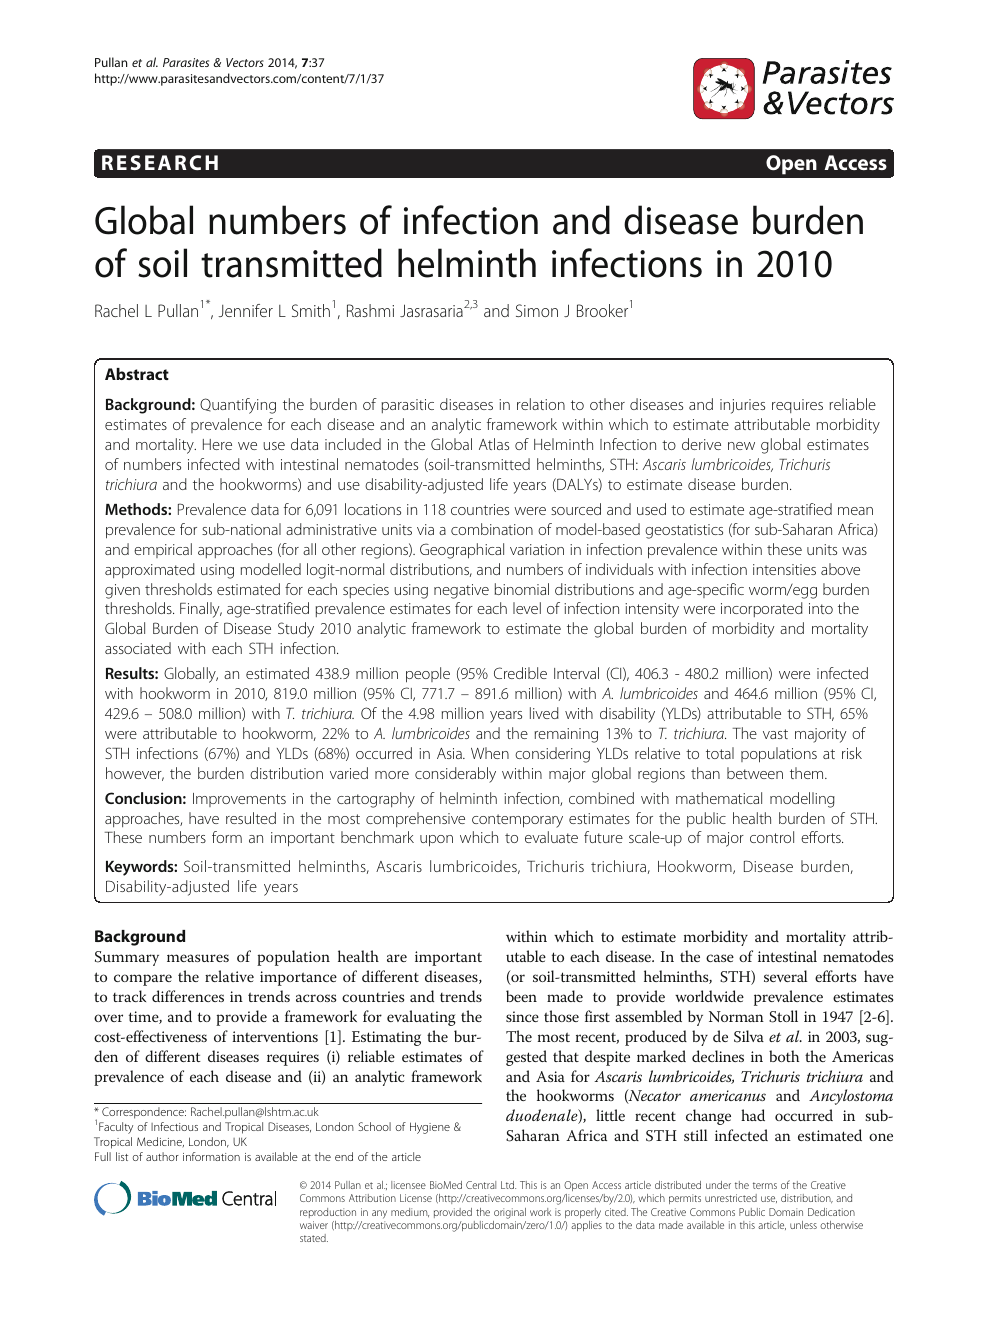 helminth infections and their impact on global public health is hpv cancer genetic